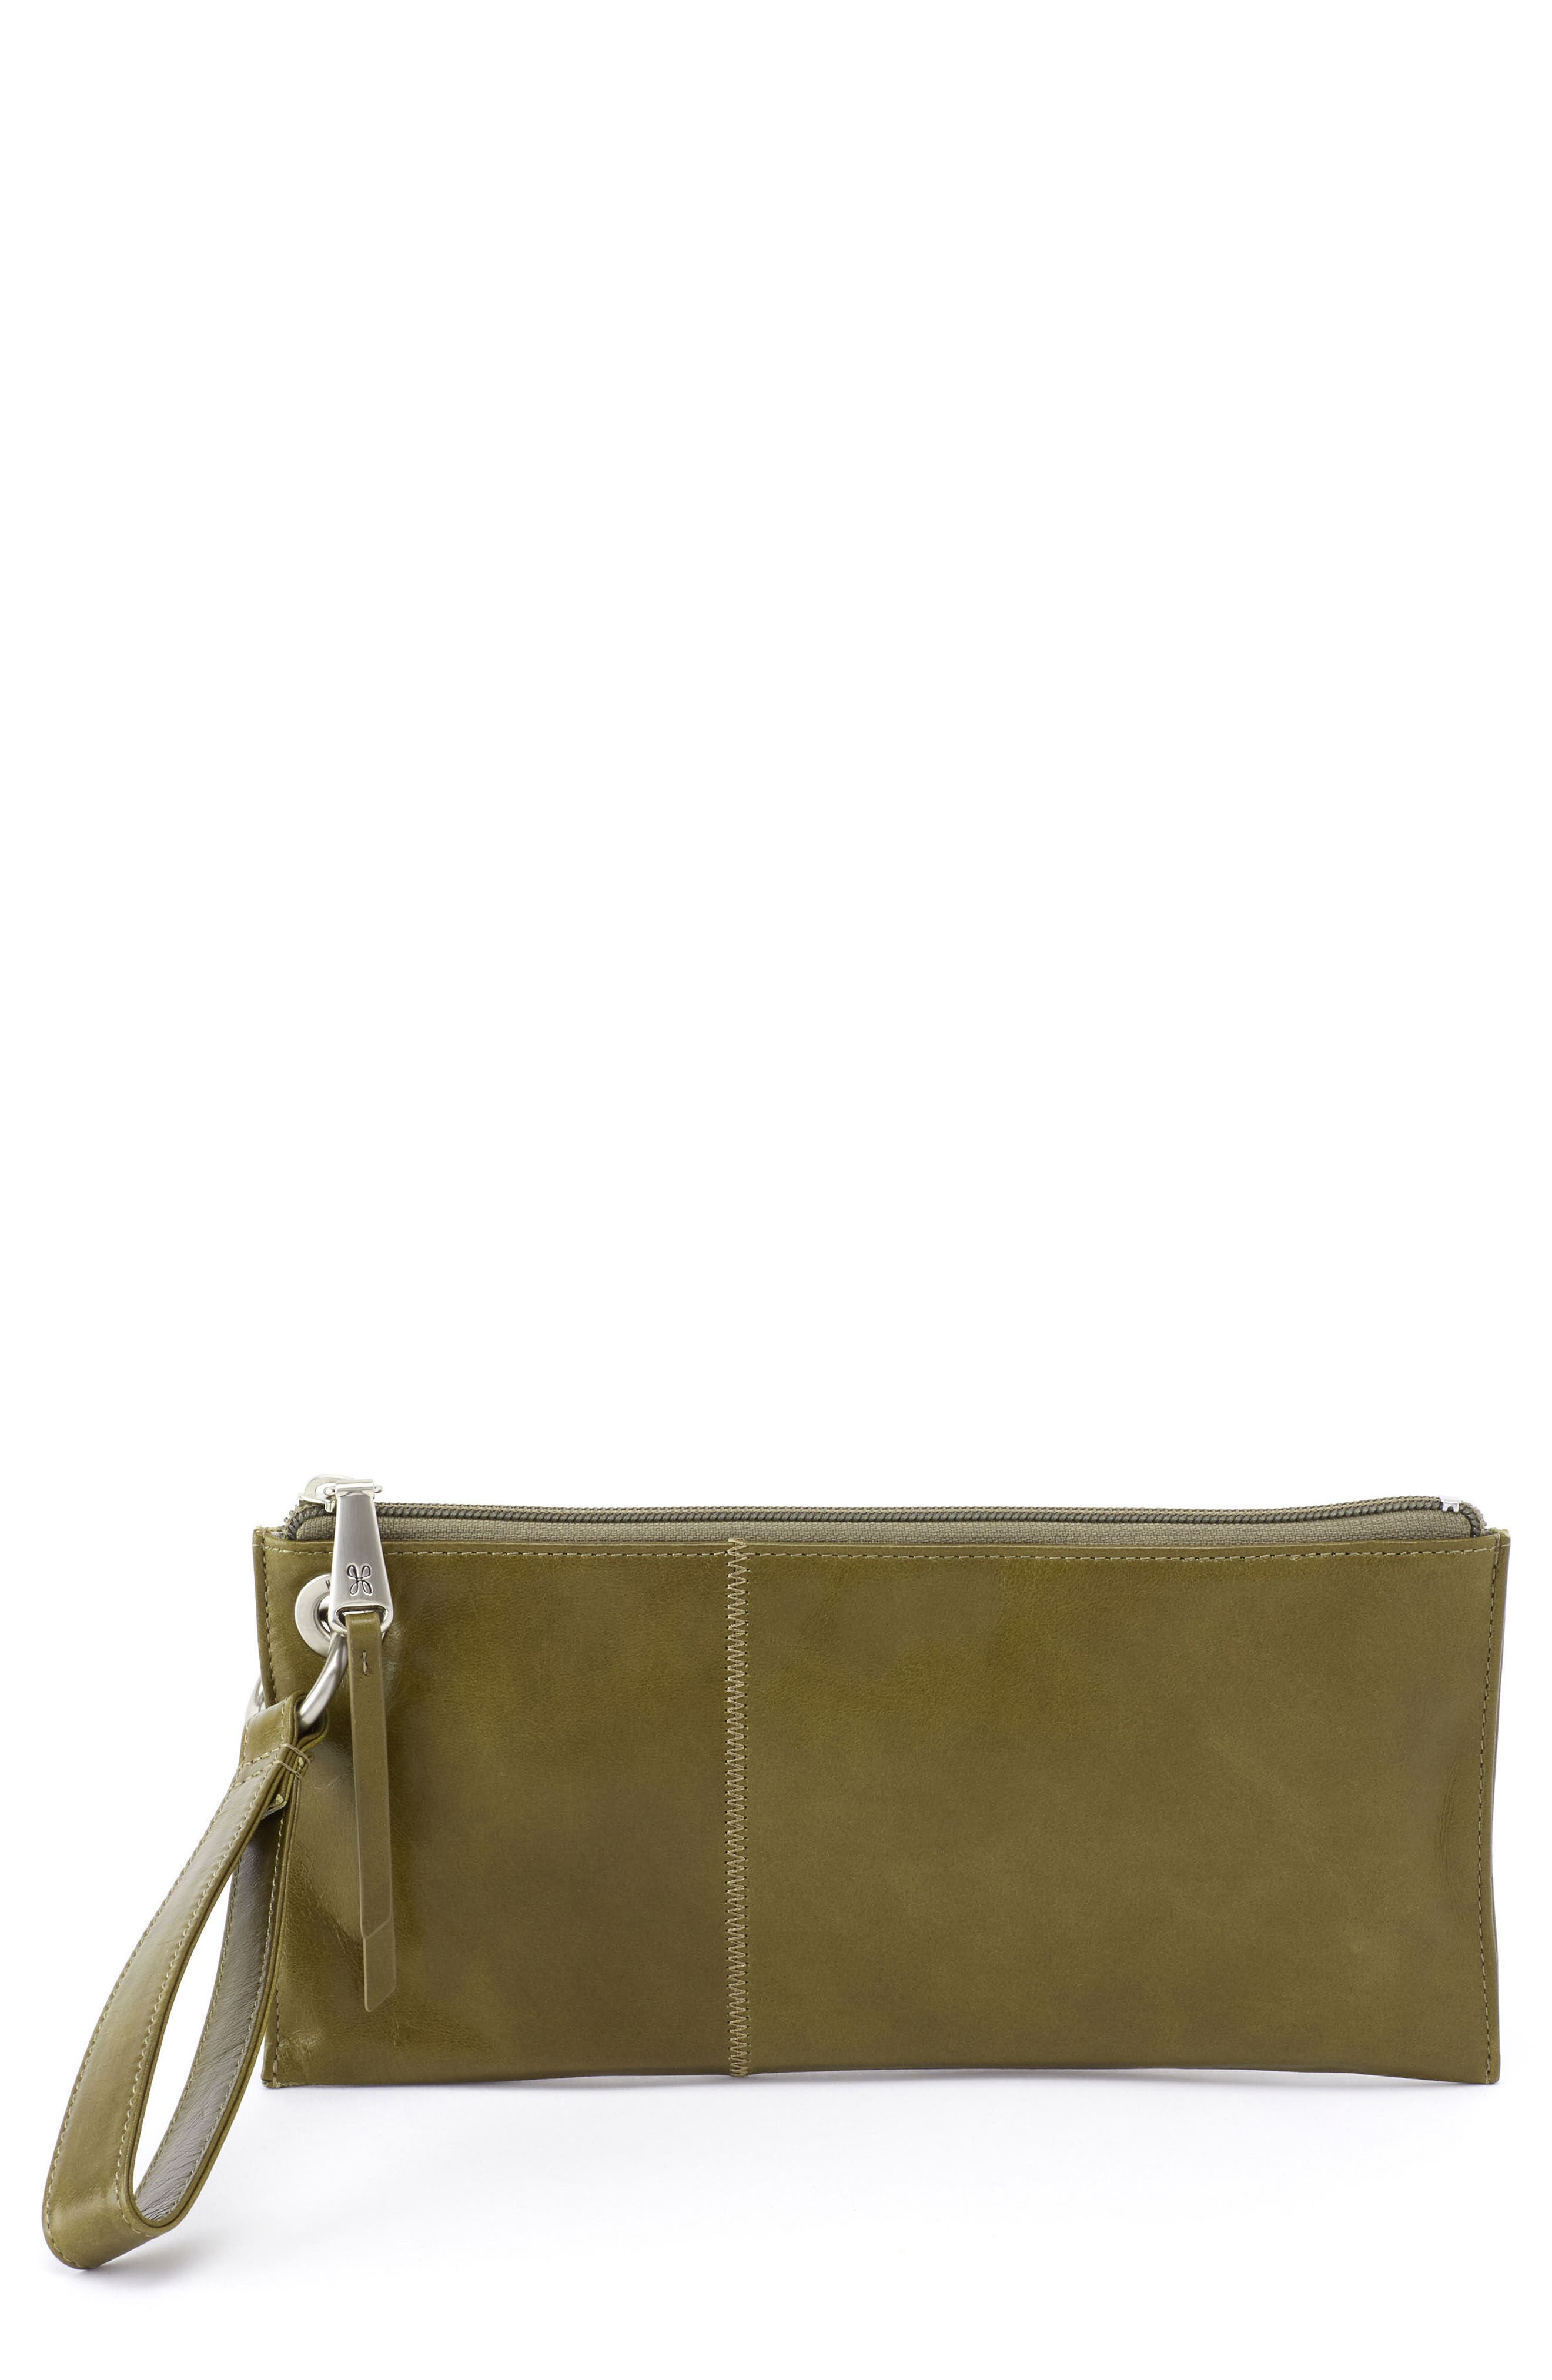 VIDA Leather Statement Clutch - guidance clutch 2 by VIDA